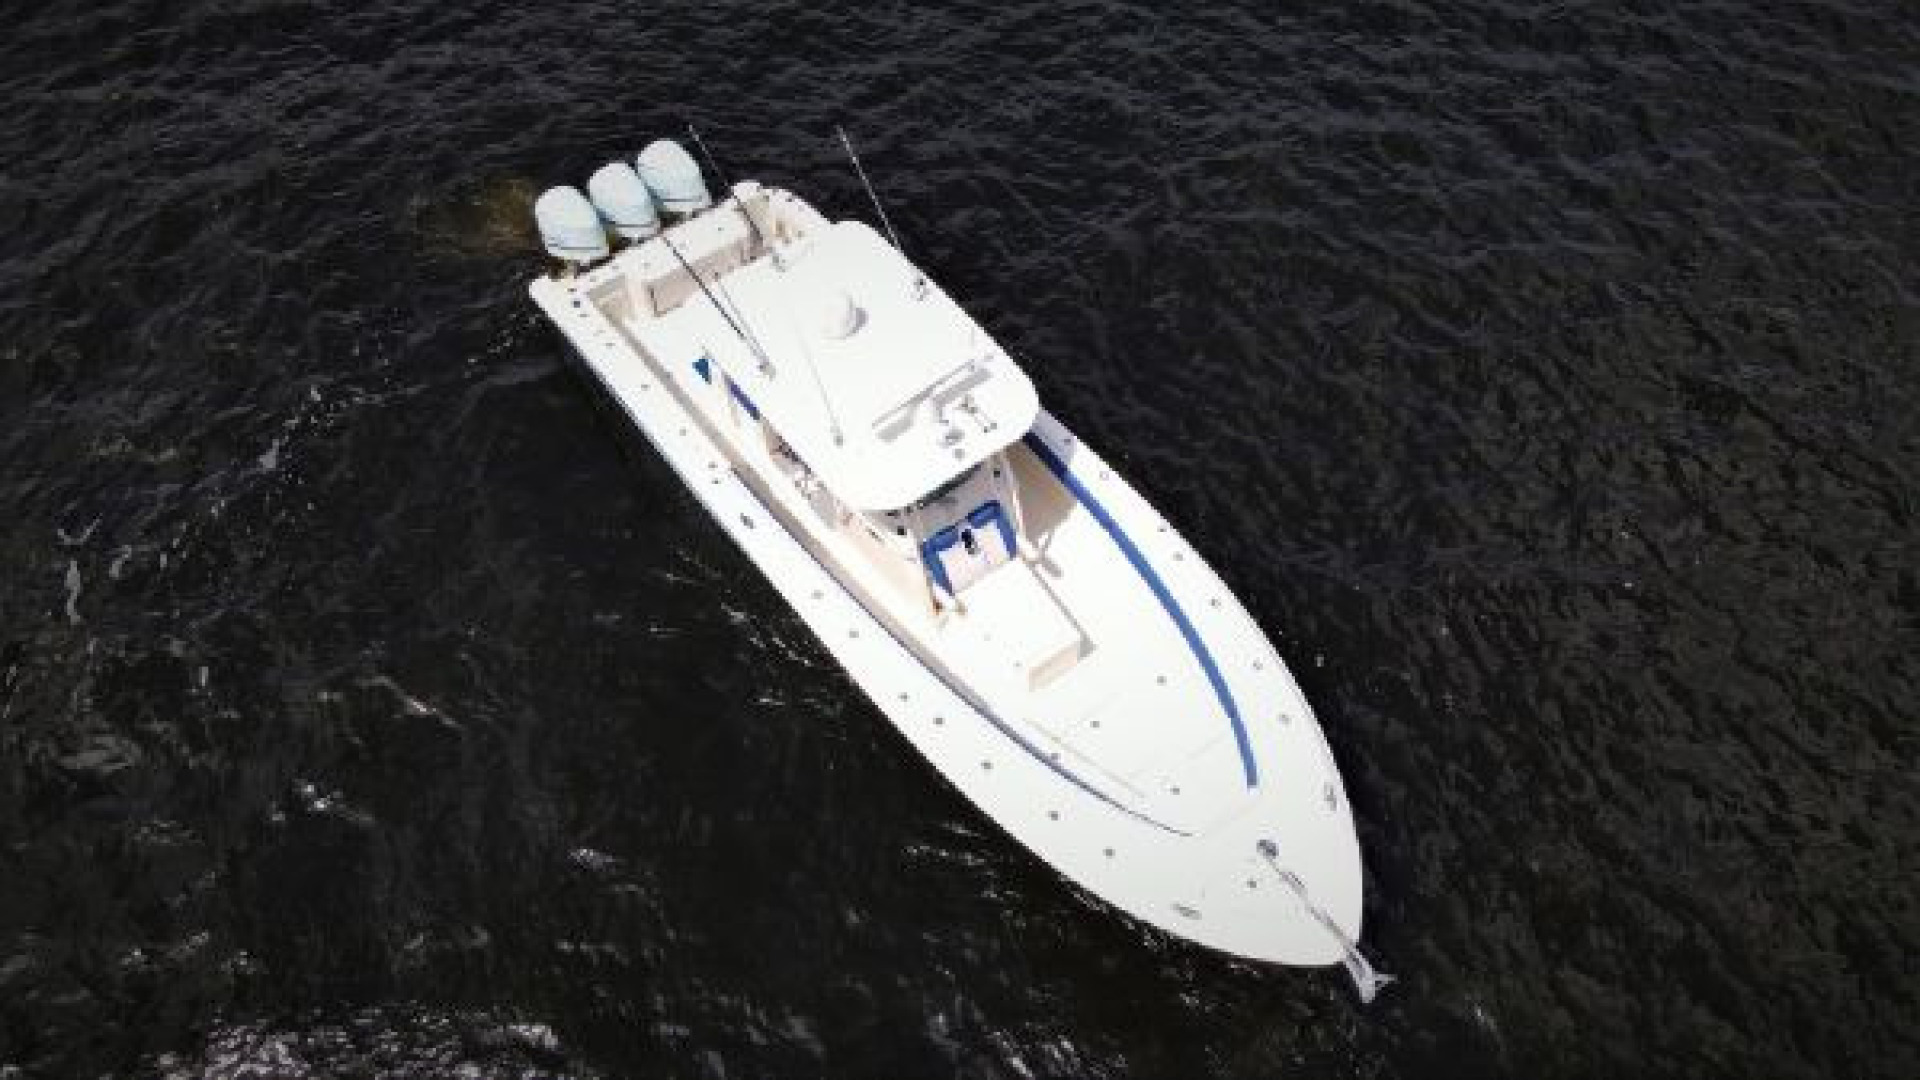 Hydra-Sports-42 Center Console 4200 SF 2011 -Fort Lauderdale-Florida-United States-1564124 | Thumbnail